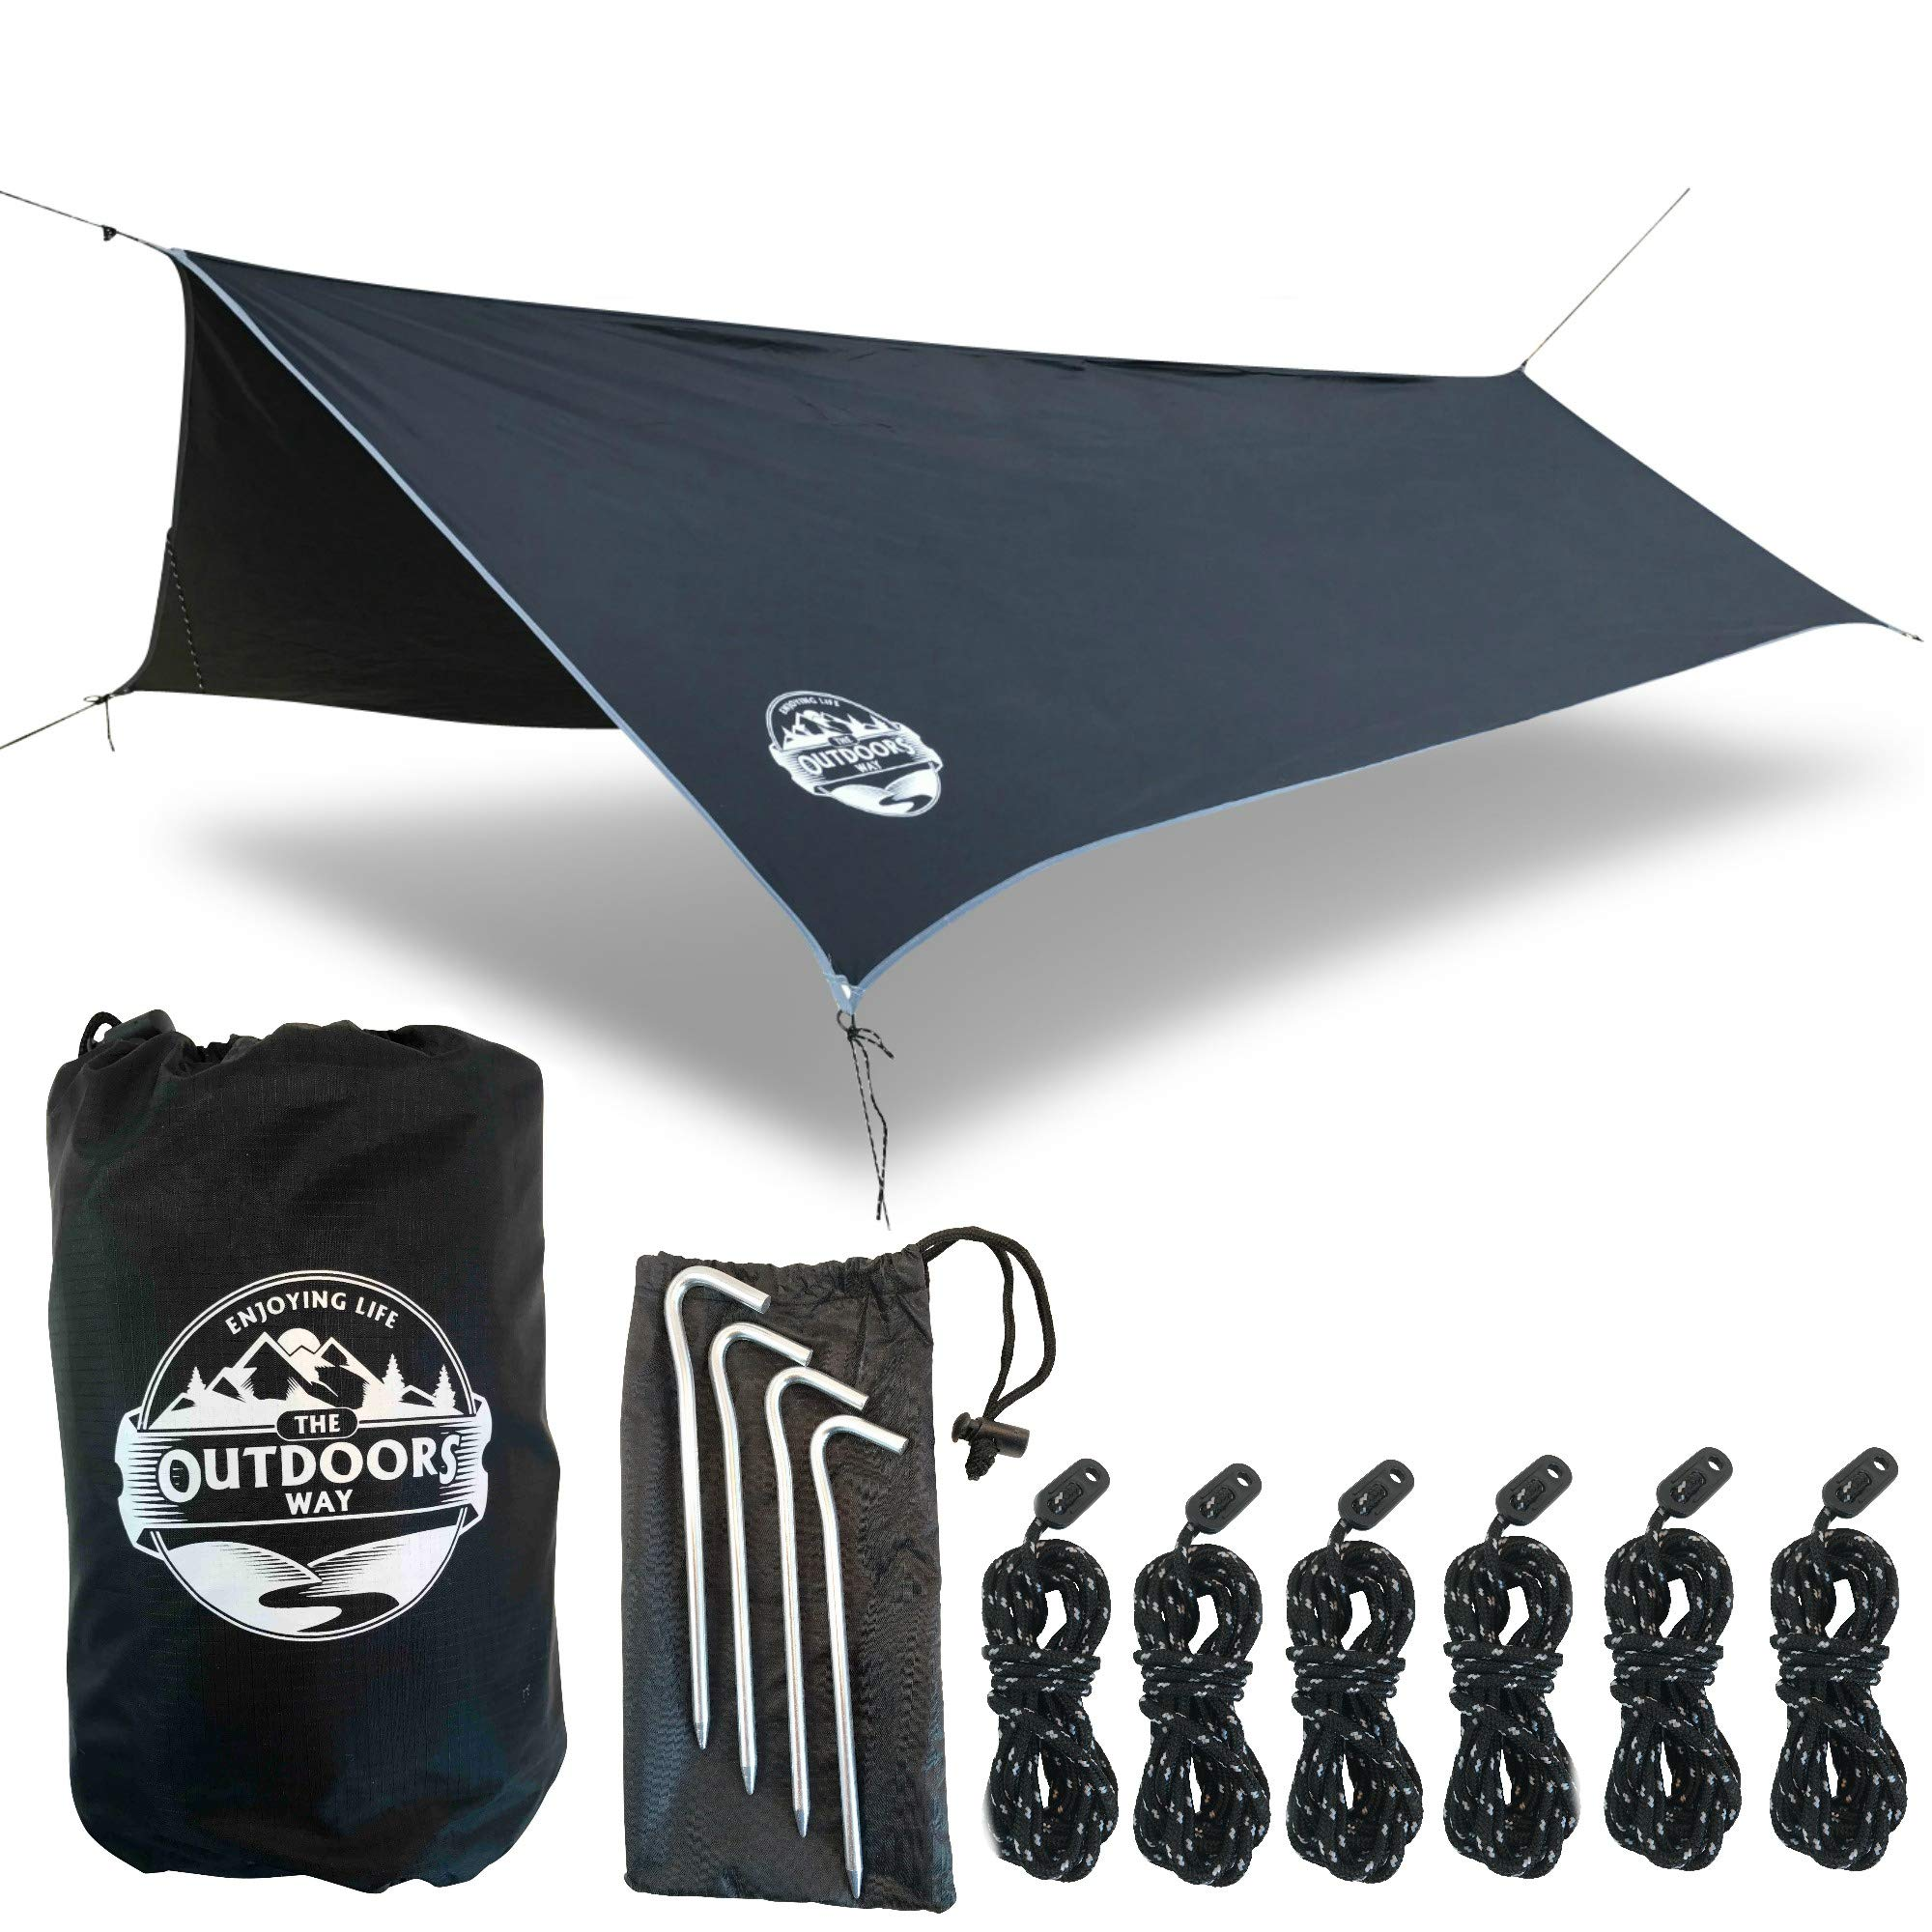 The Outdoors Way Hammock Tarp- 12 Foot Rain Fly for Extreme Waterproof Protection, Large Canopy is Portable and Provides Ideal Shelter for Your Camping Hammock Or Tent. by The Outdoors Way